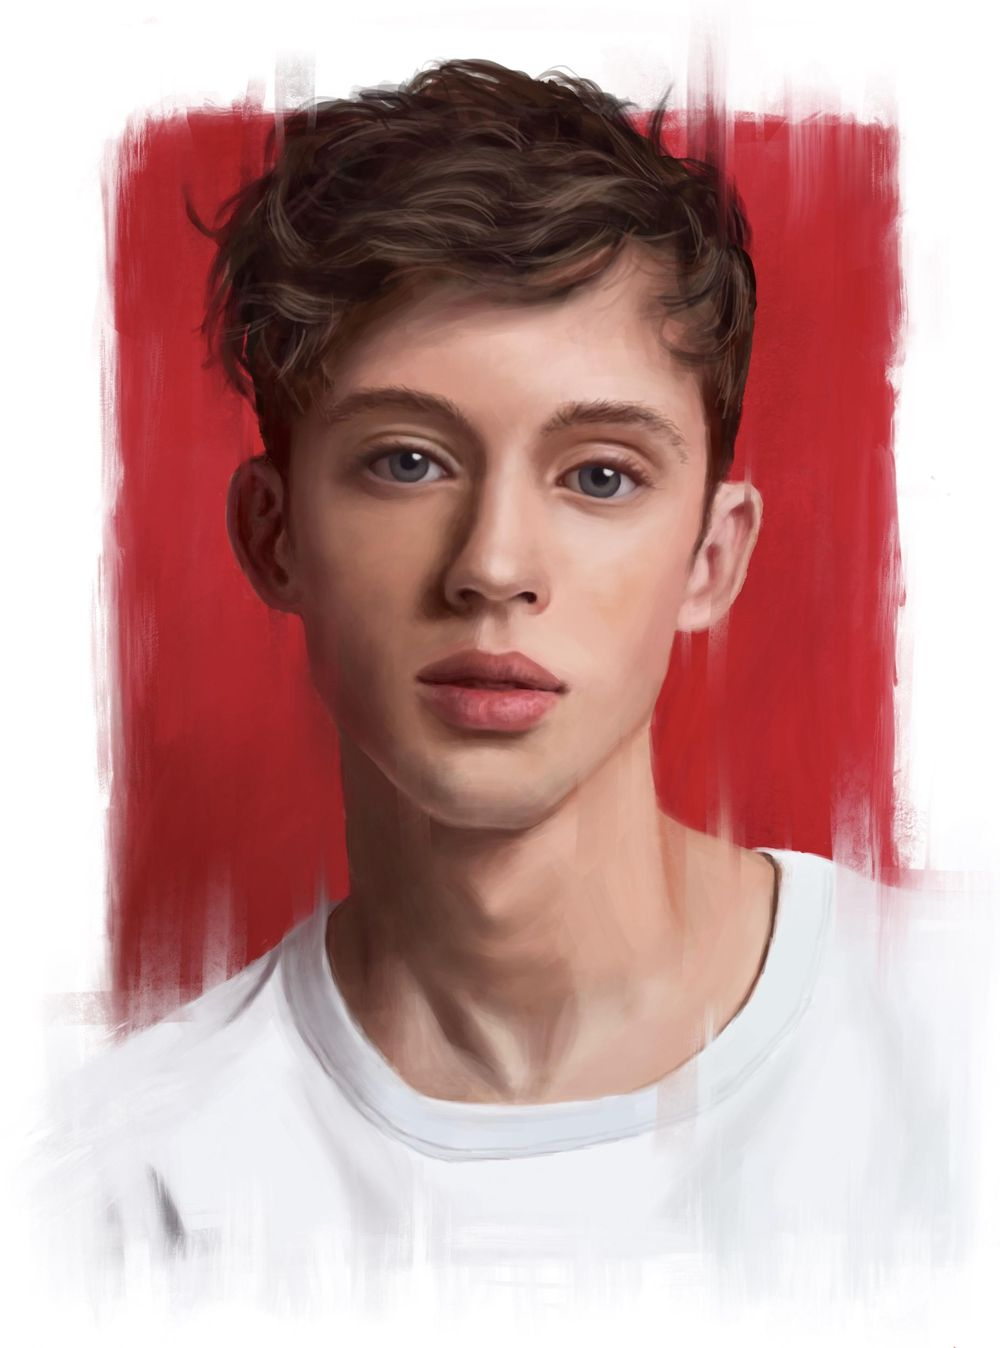 My First Digital Painting - image 1 - student project